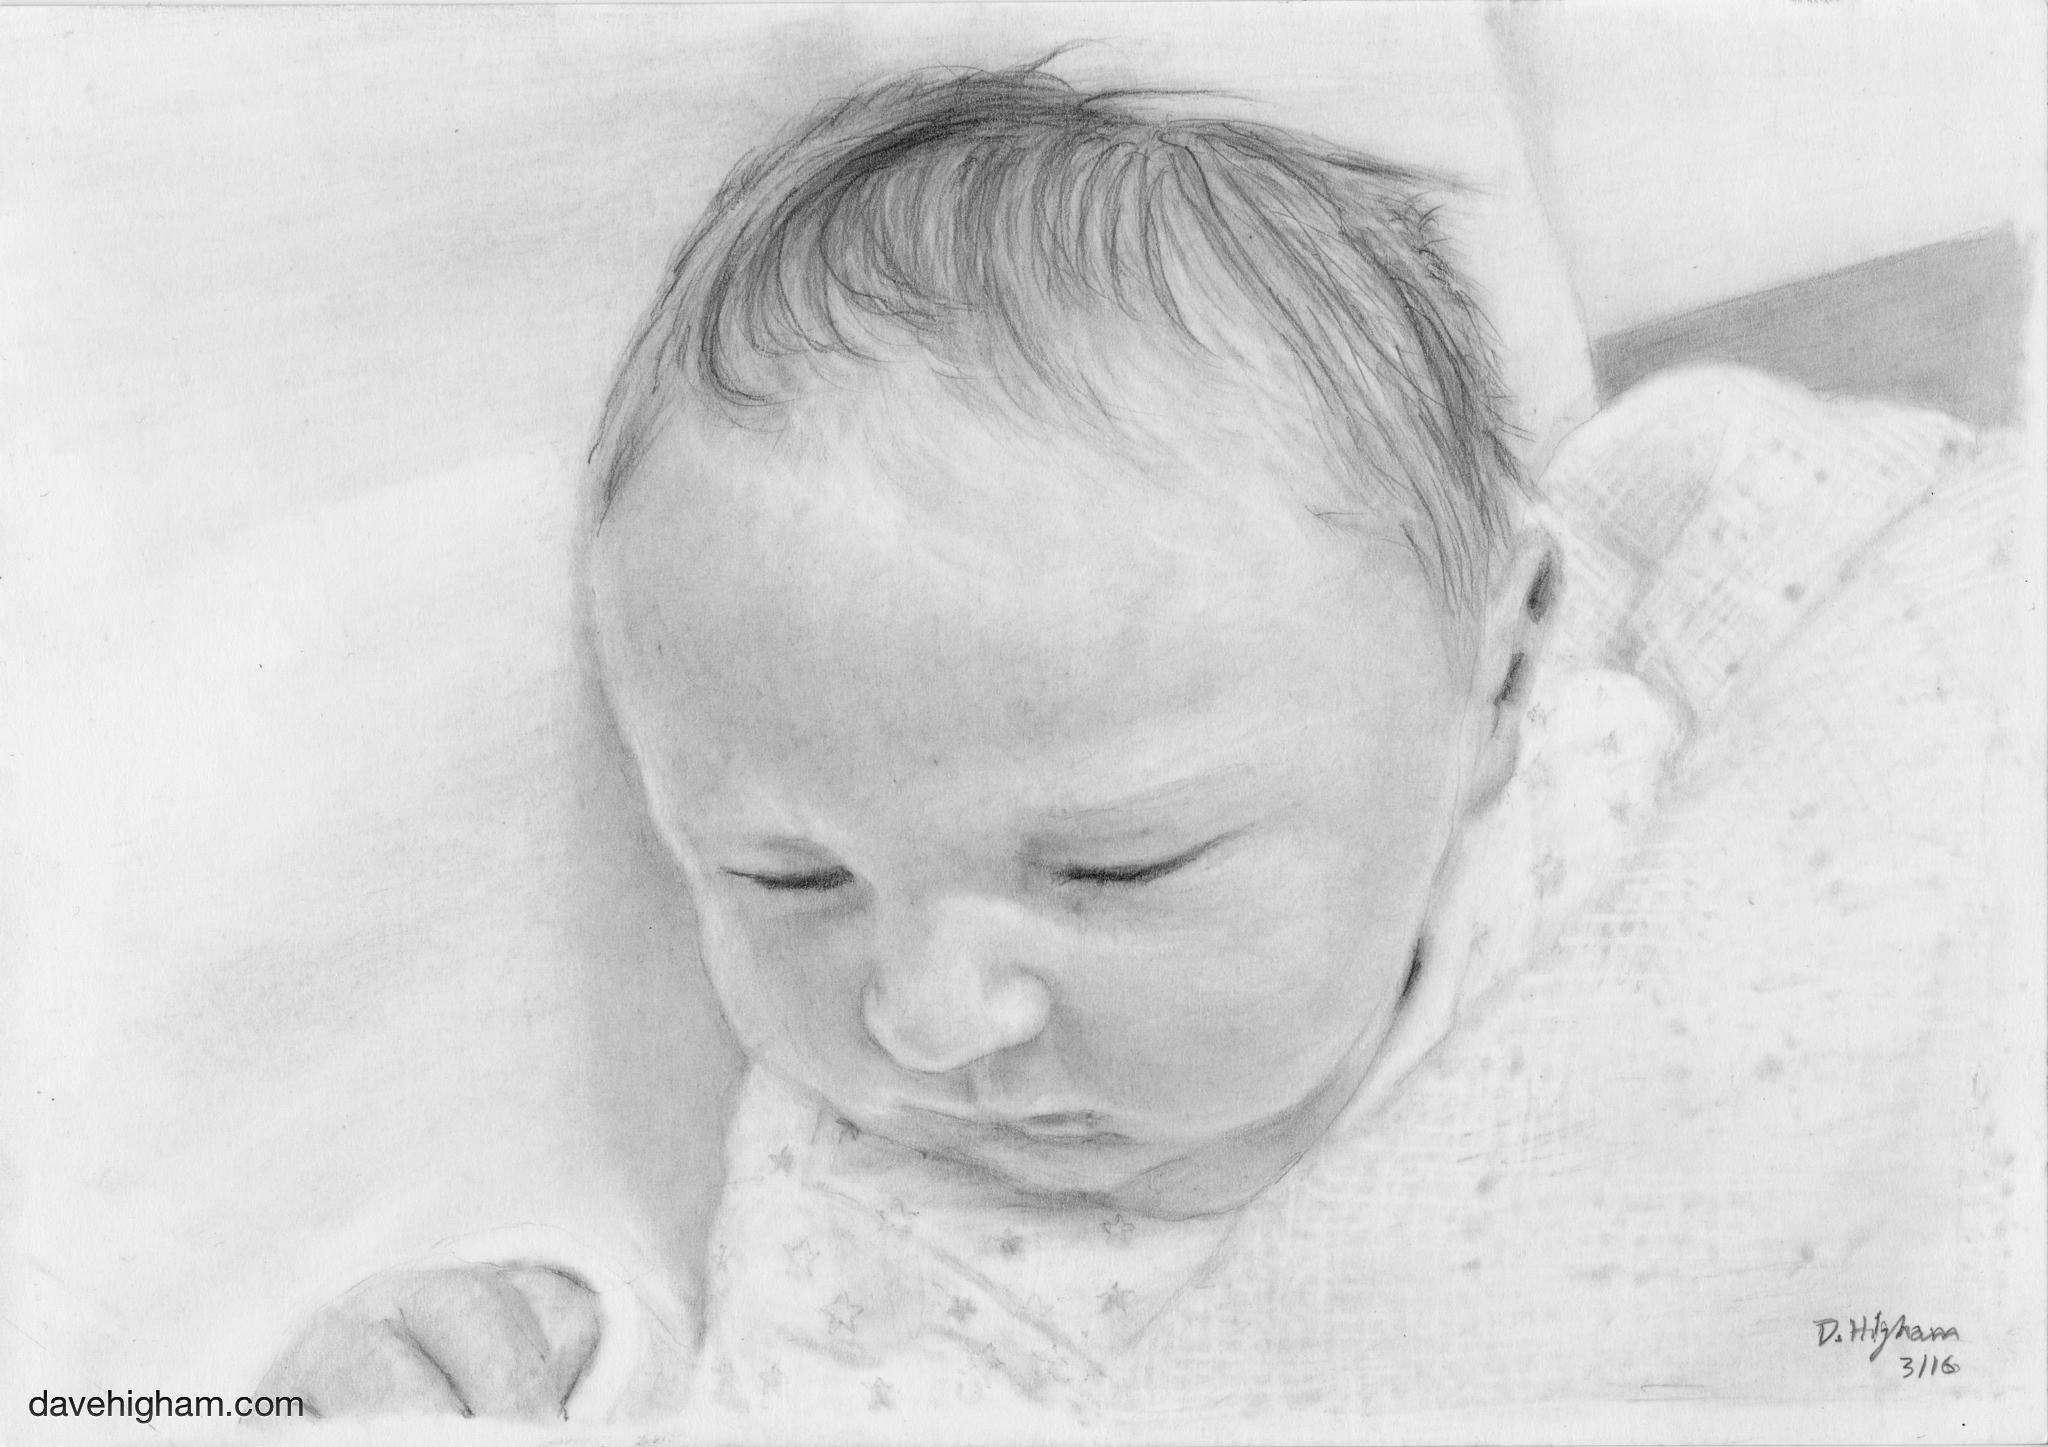 A portrait of a baby